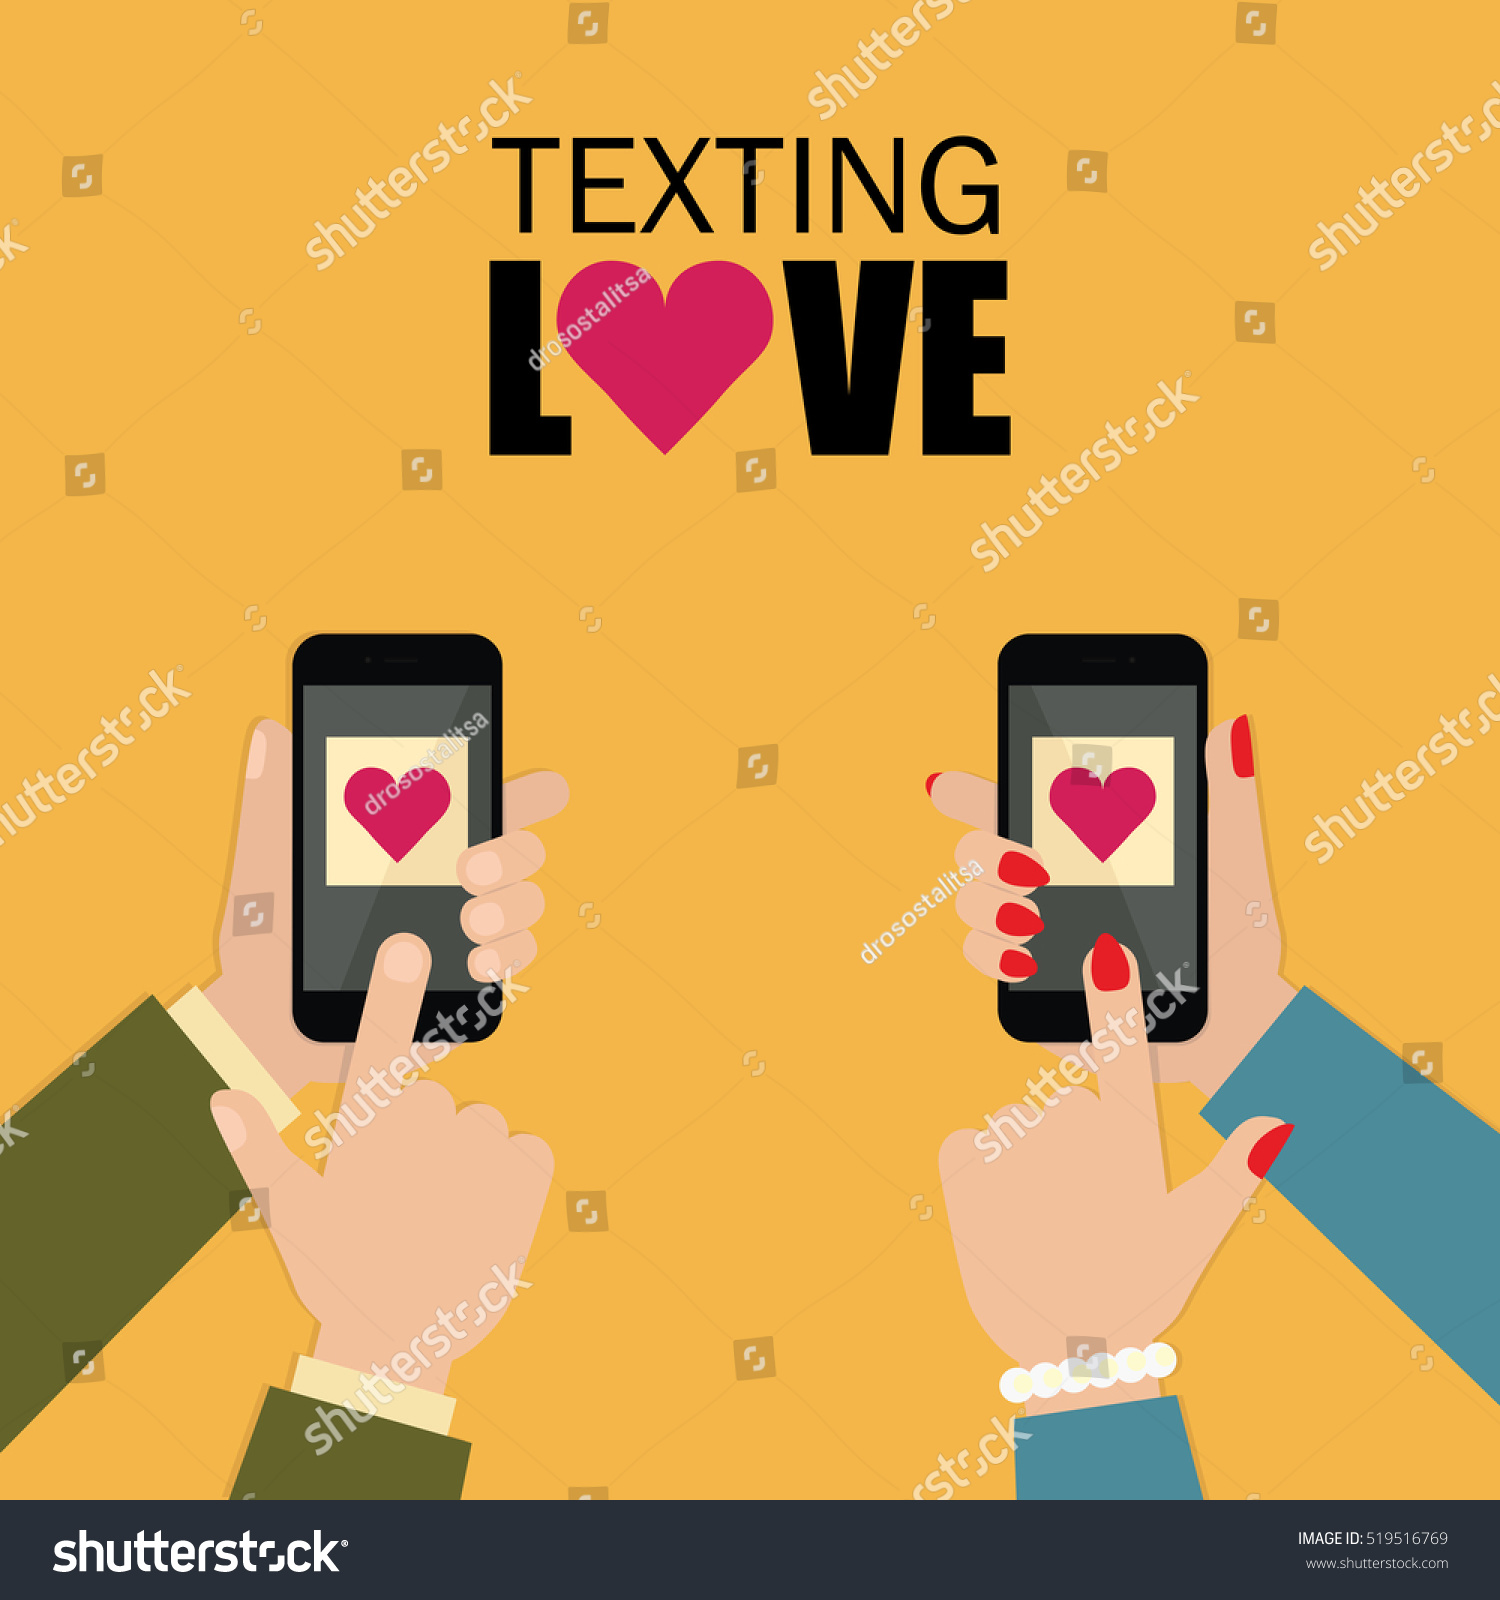 Couple love texting through mobile phone stock vector 519516769 couple in love texting through mobile phone smartphone chat with hearts vector flat design buycottarizona Image collections